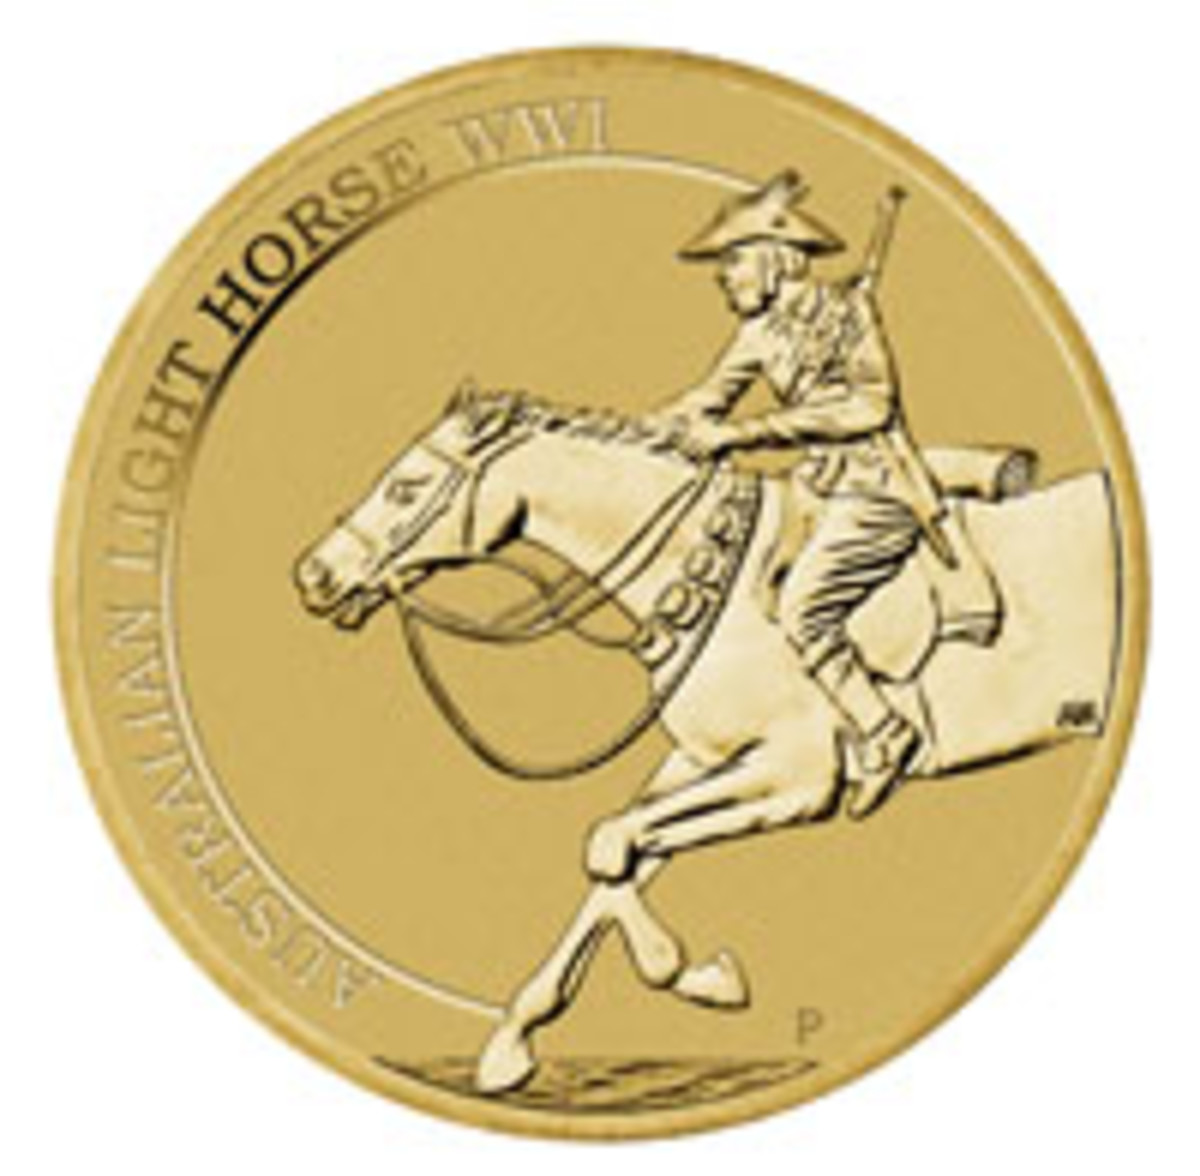 Australia's Light Horse are saluted with $1 coin (above) and $1 stamp on a first day of issue PNC (below). (Images courtesy & © The Perth Mint and Australia Post)